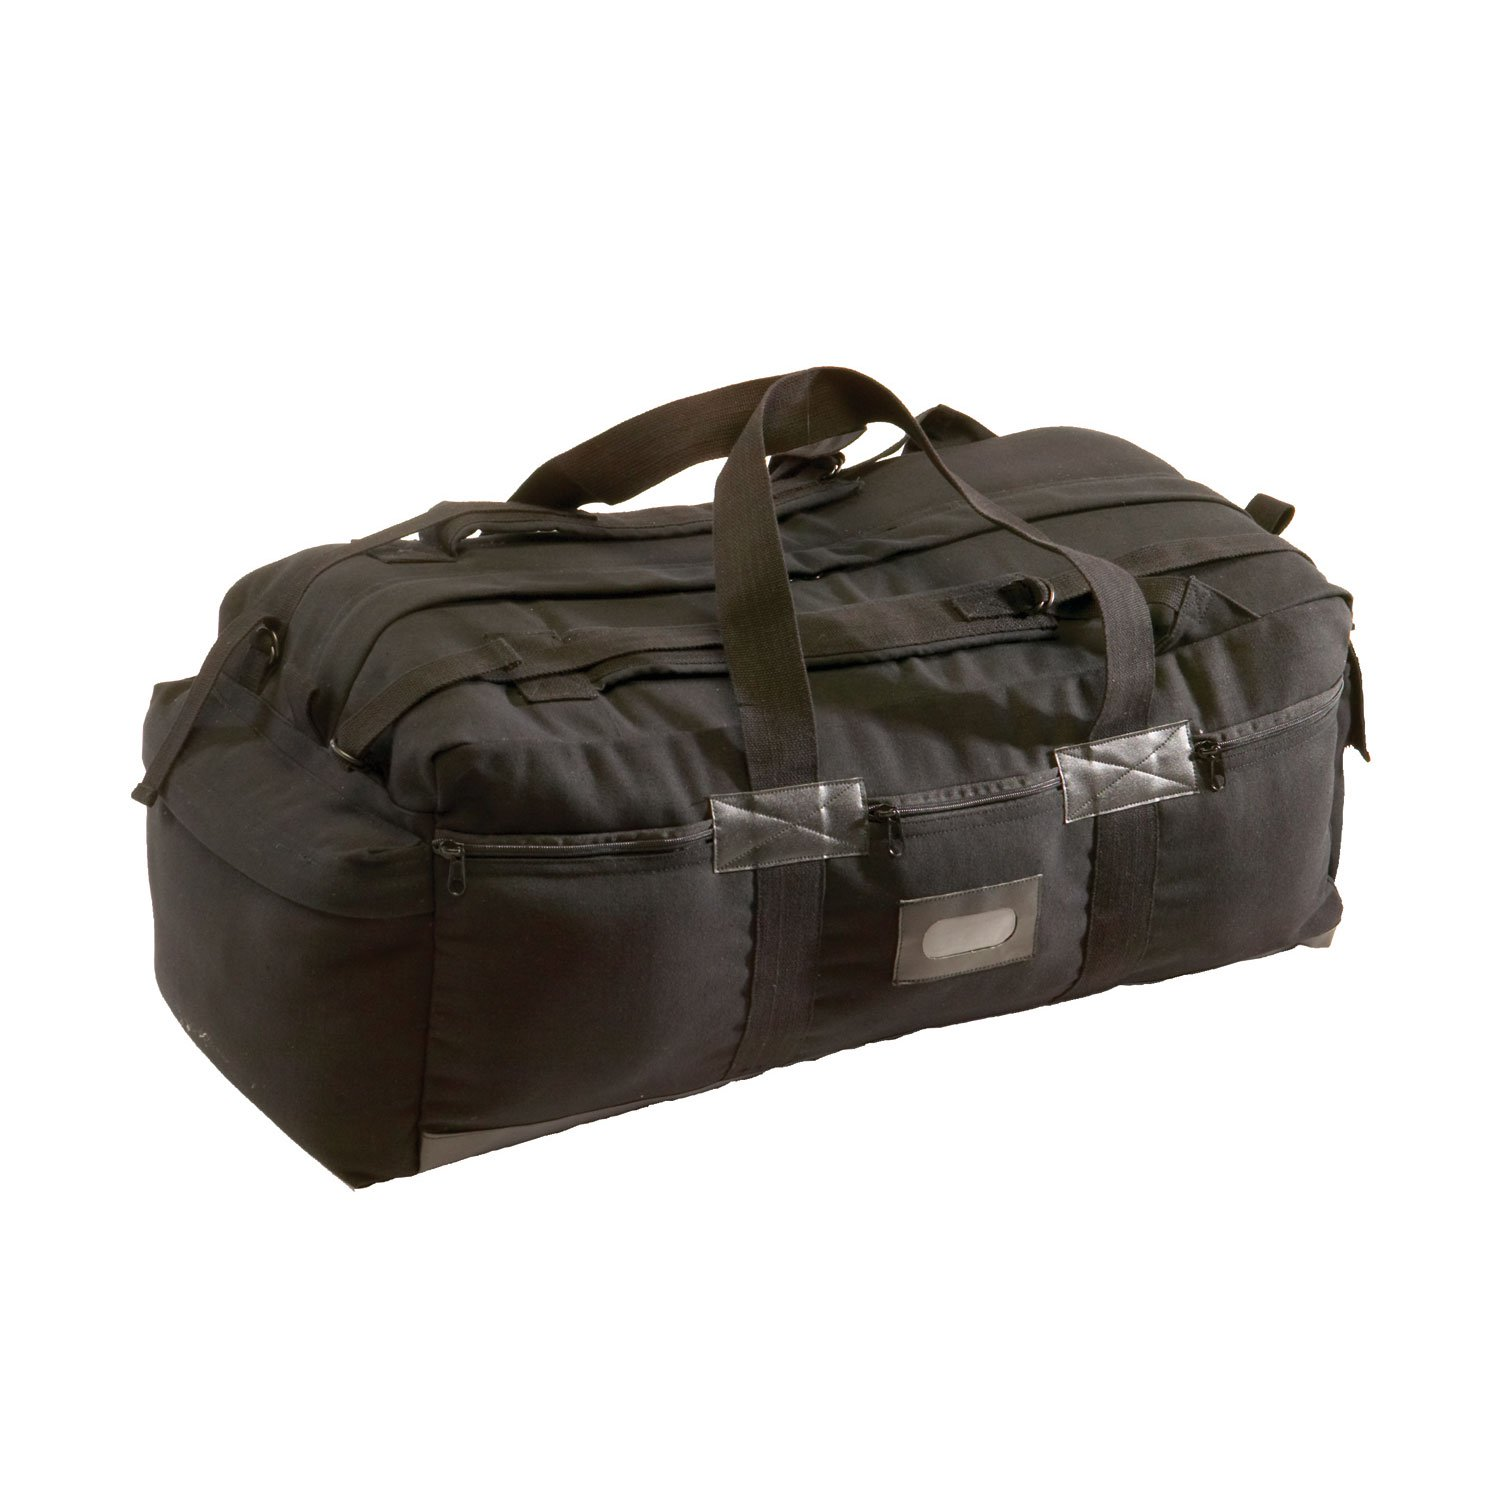 Texsport Zippered Durable PVC Material Canvas Outdoor Sports Tactical Bag, Black